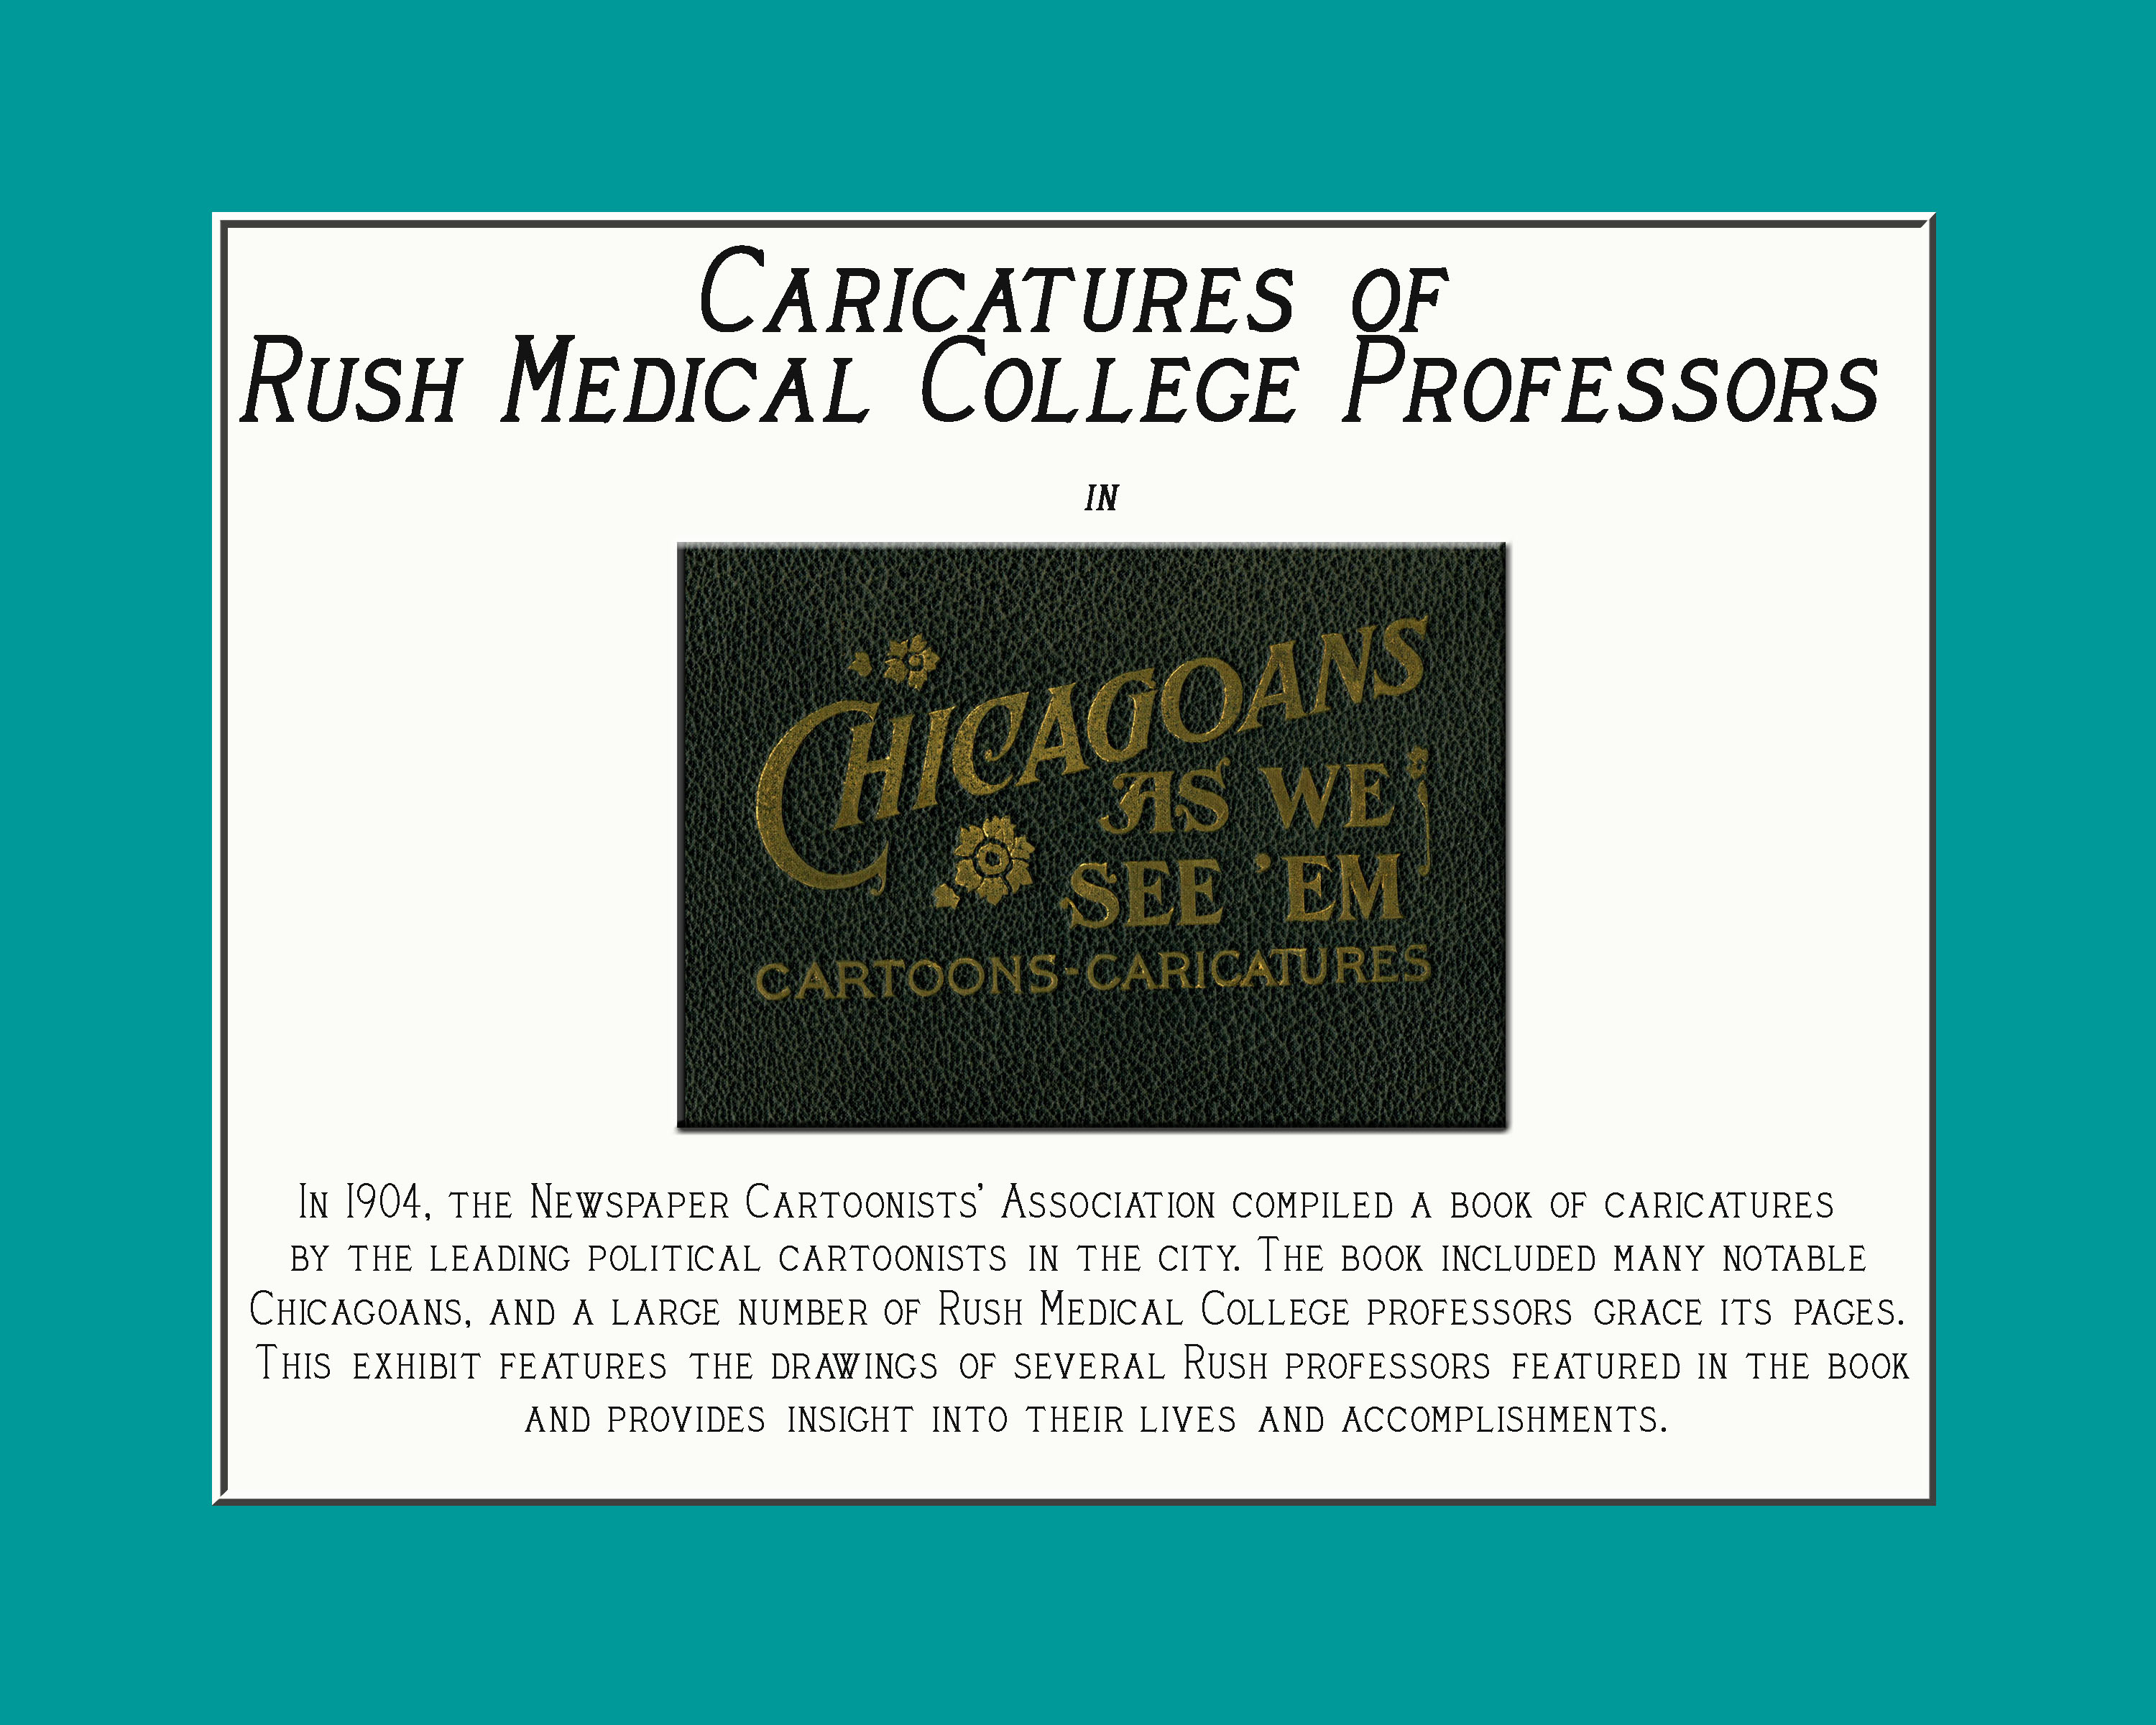 Title panel for Caricature exhibit. Text on page.